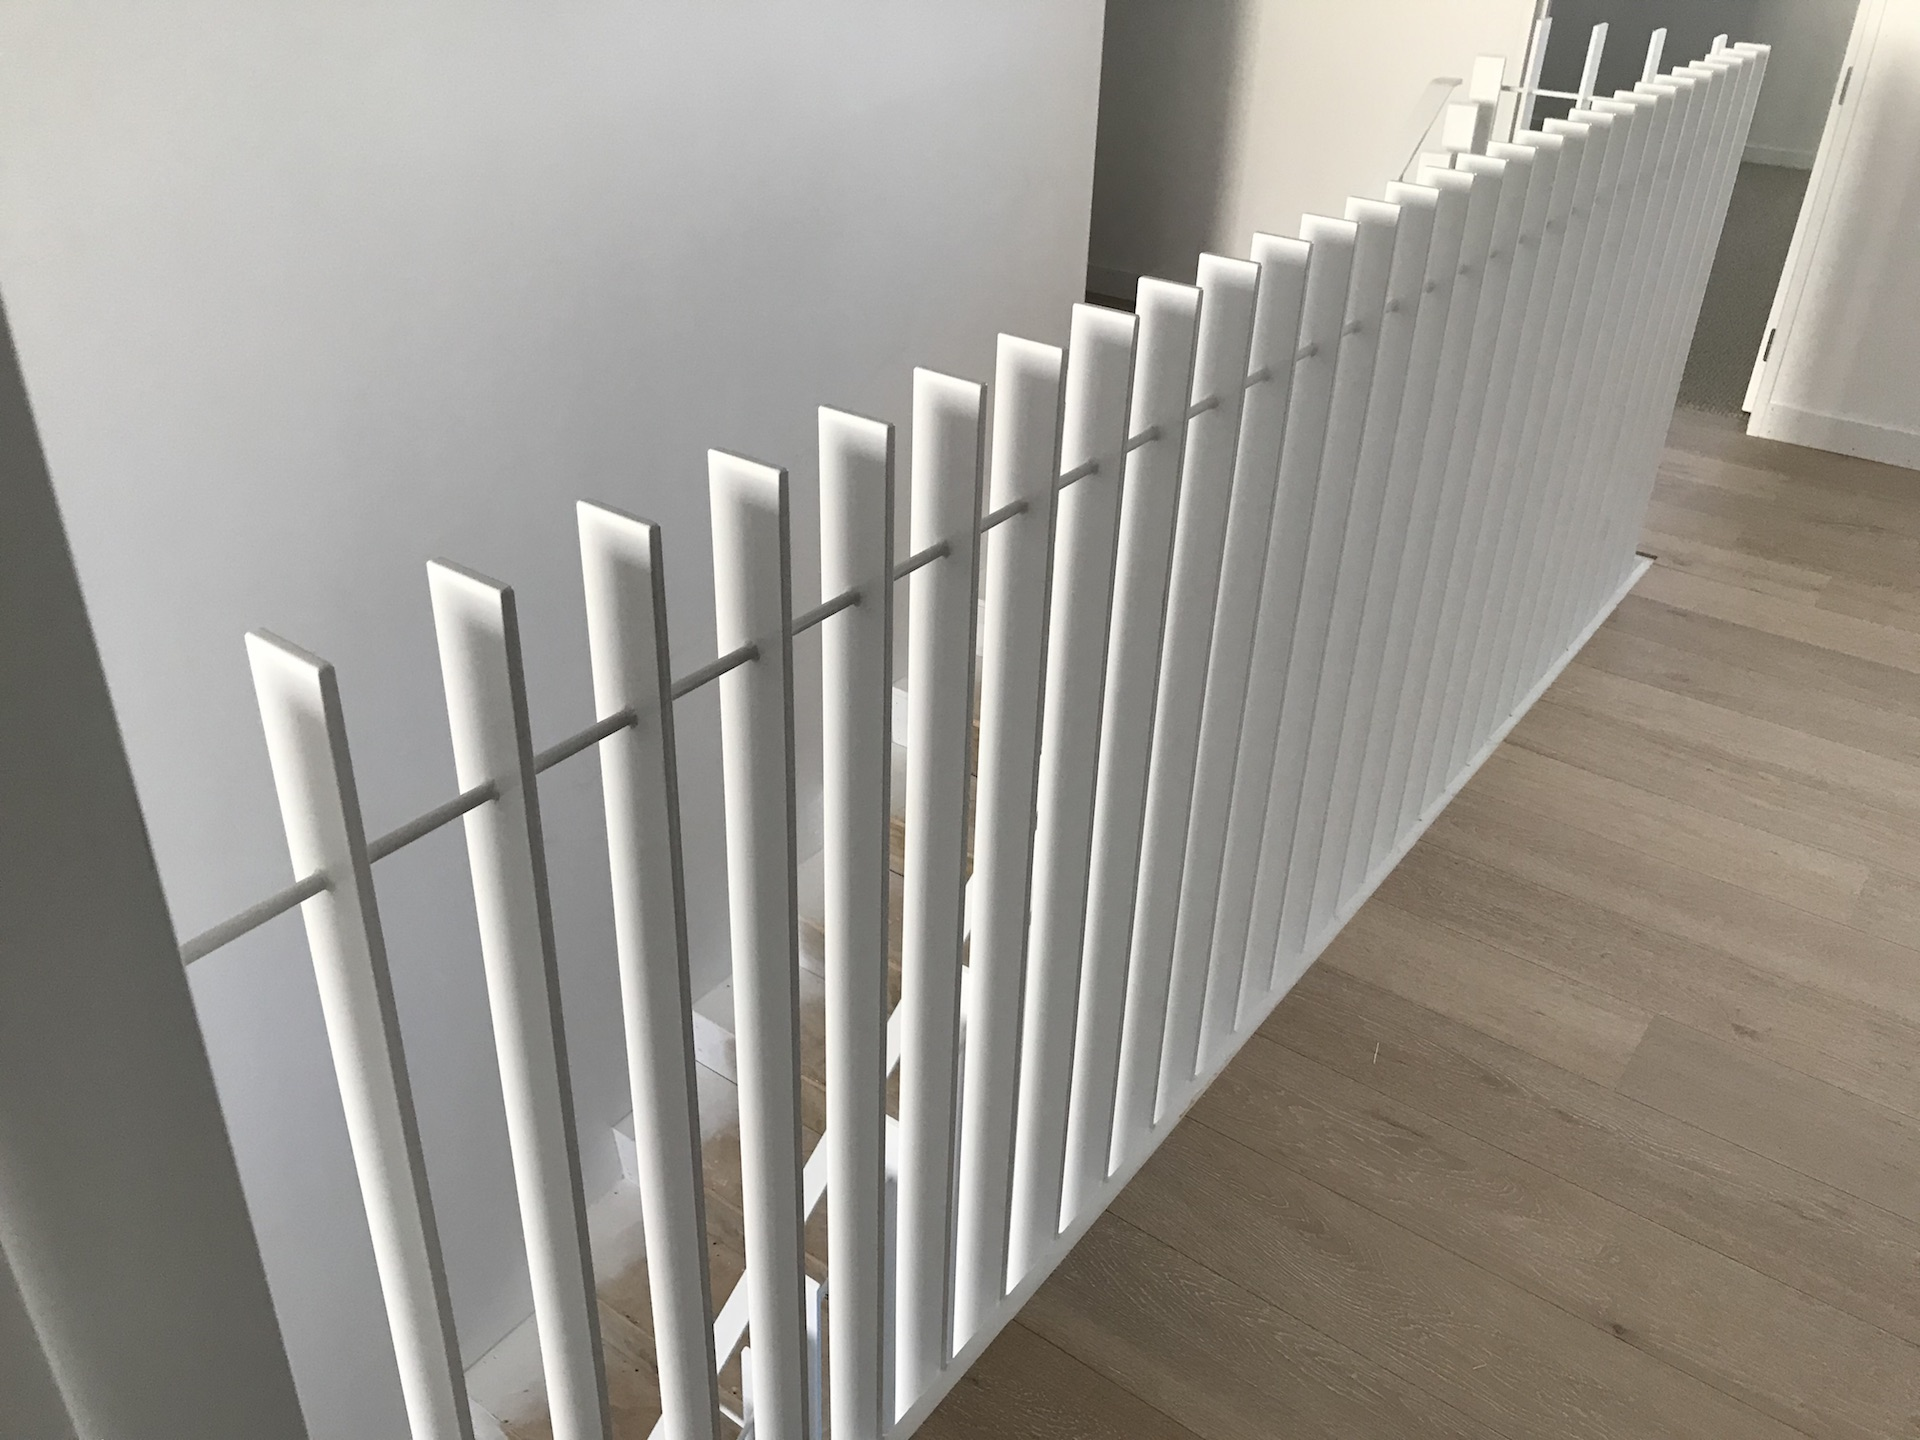 Balustrade manufactured to match the aesthetic of this Auckland home